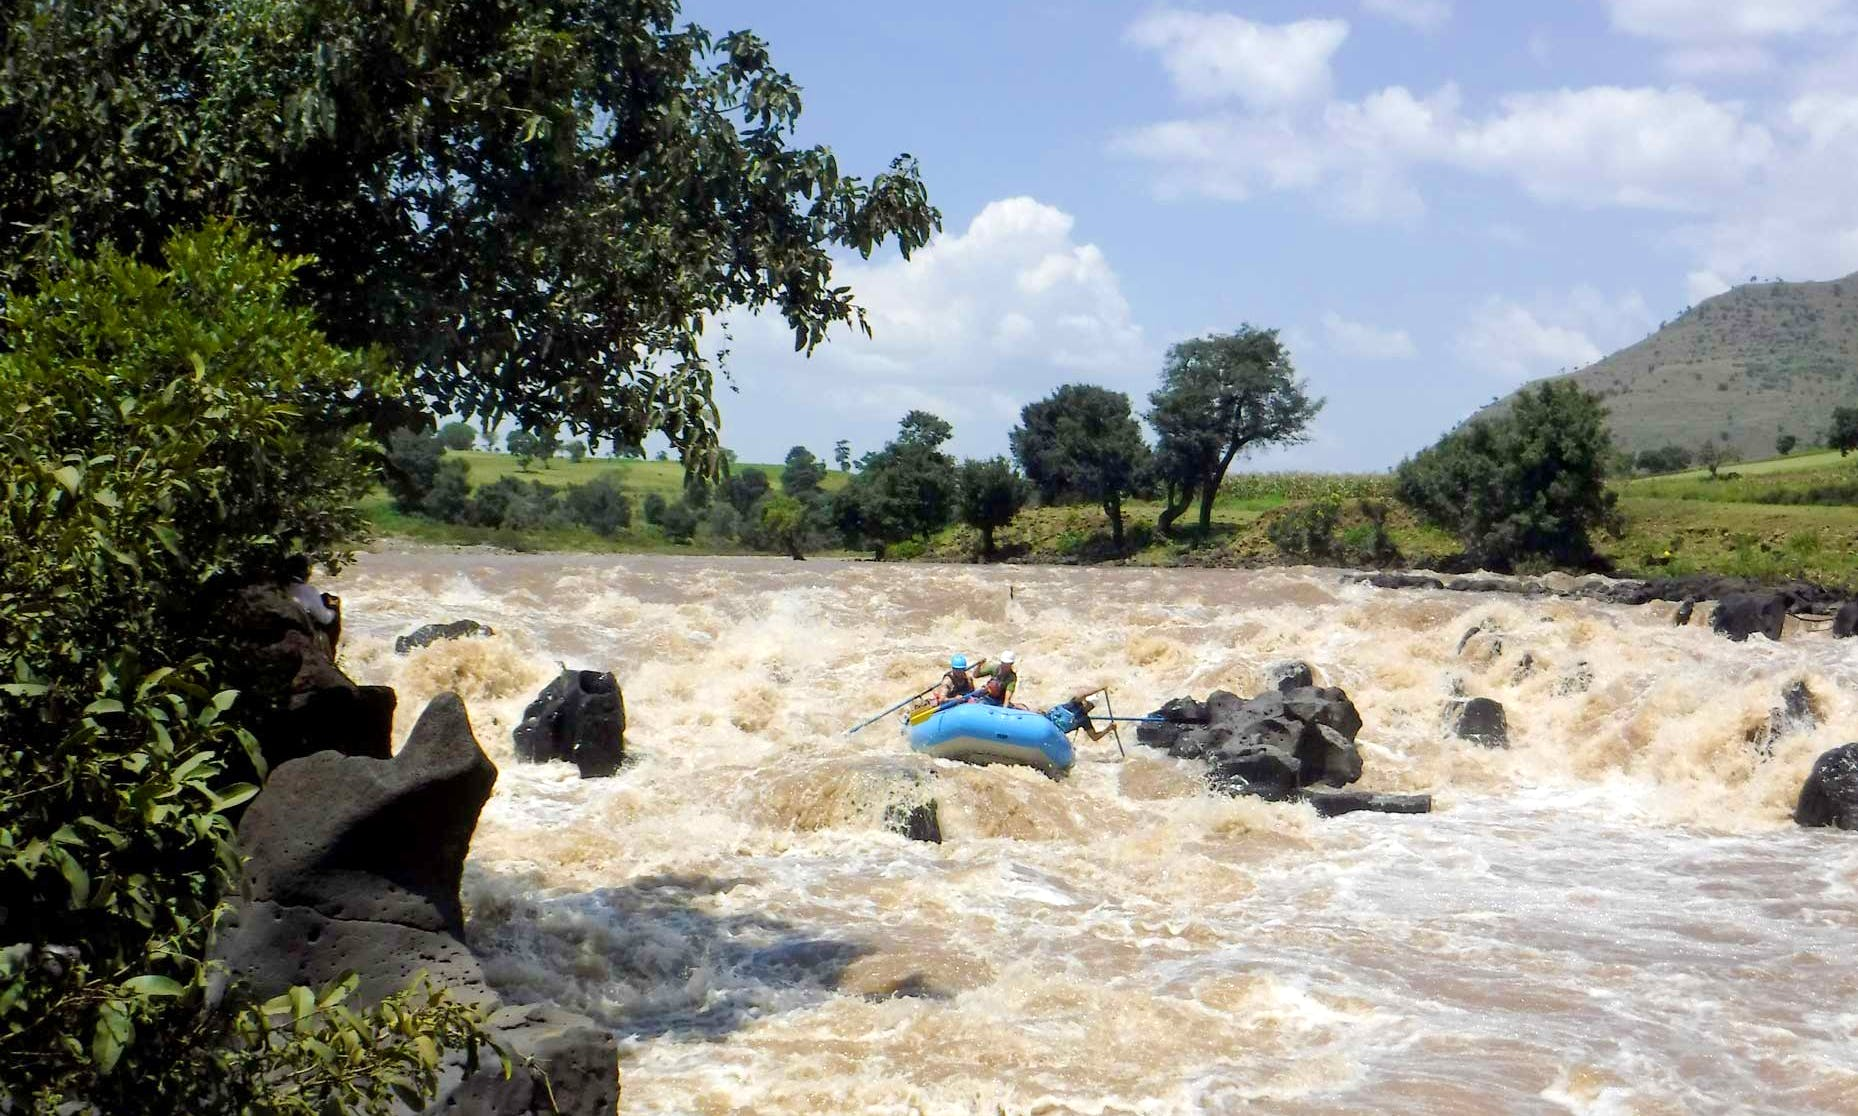 Blue Nile rafting expedition (Grand Canyon of the Nile - Upper)